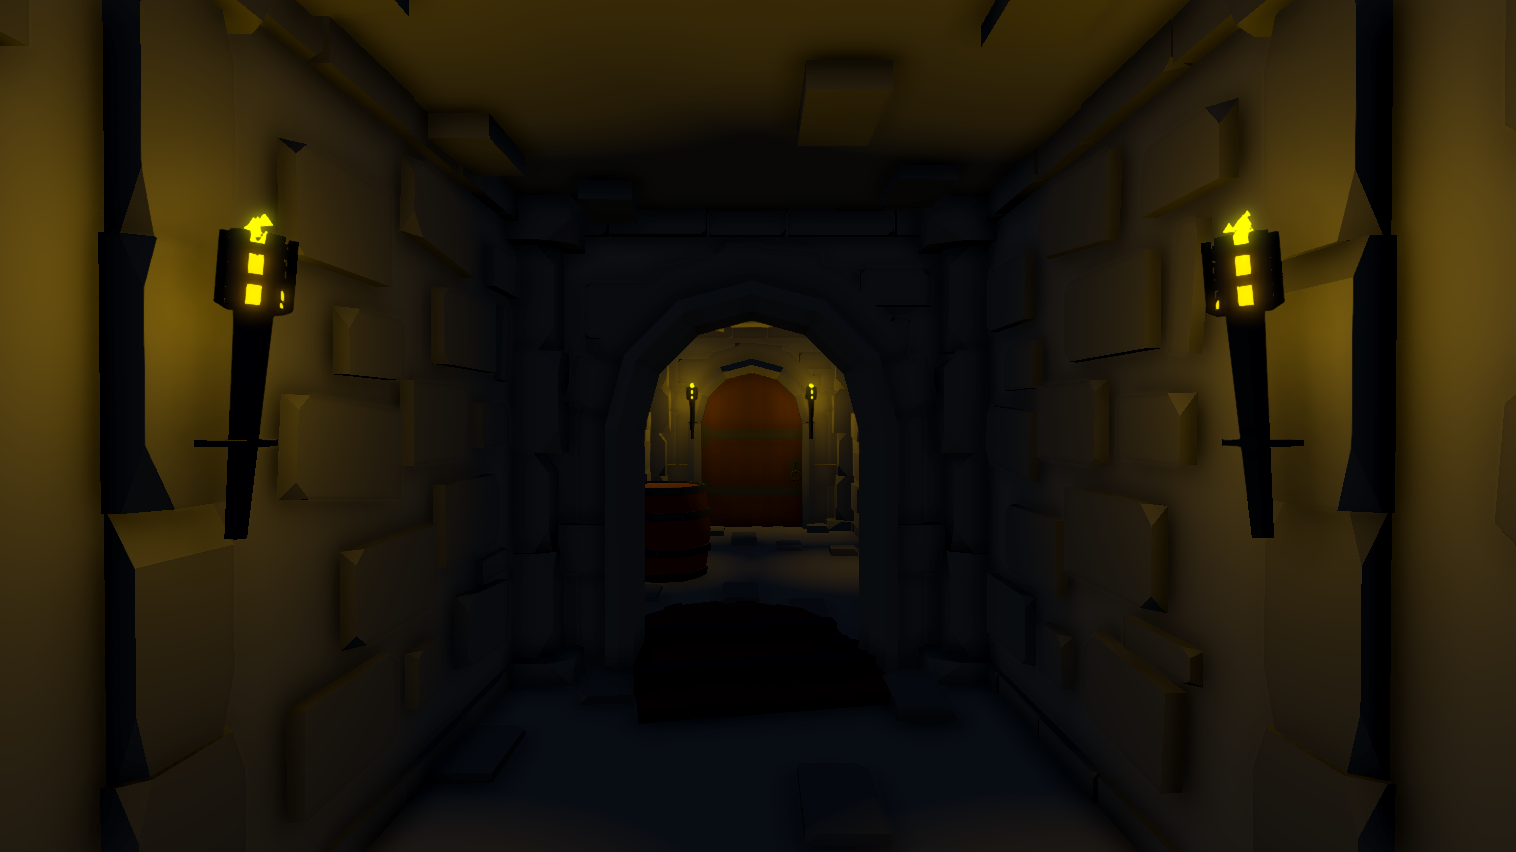 A couple of screenshots from a game I'm working on